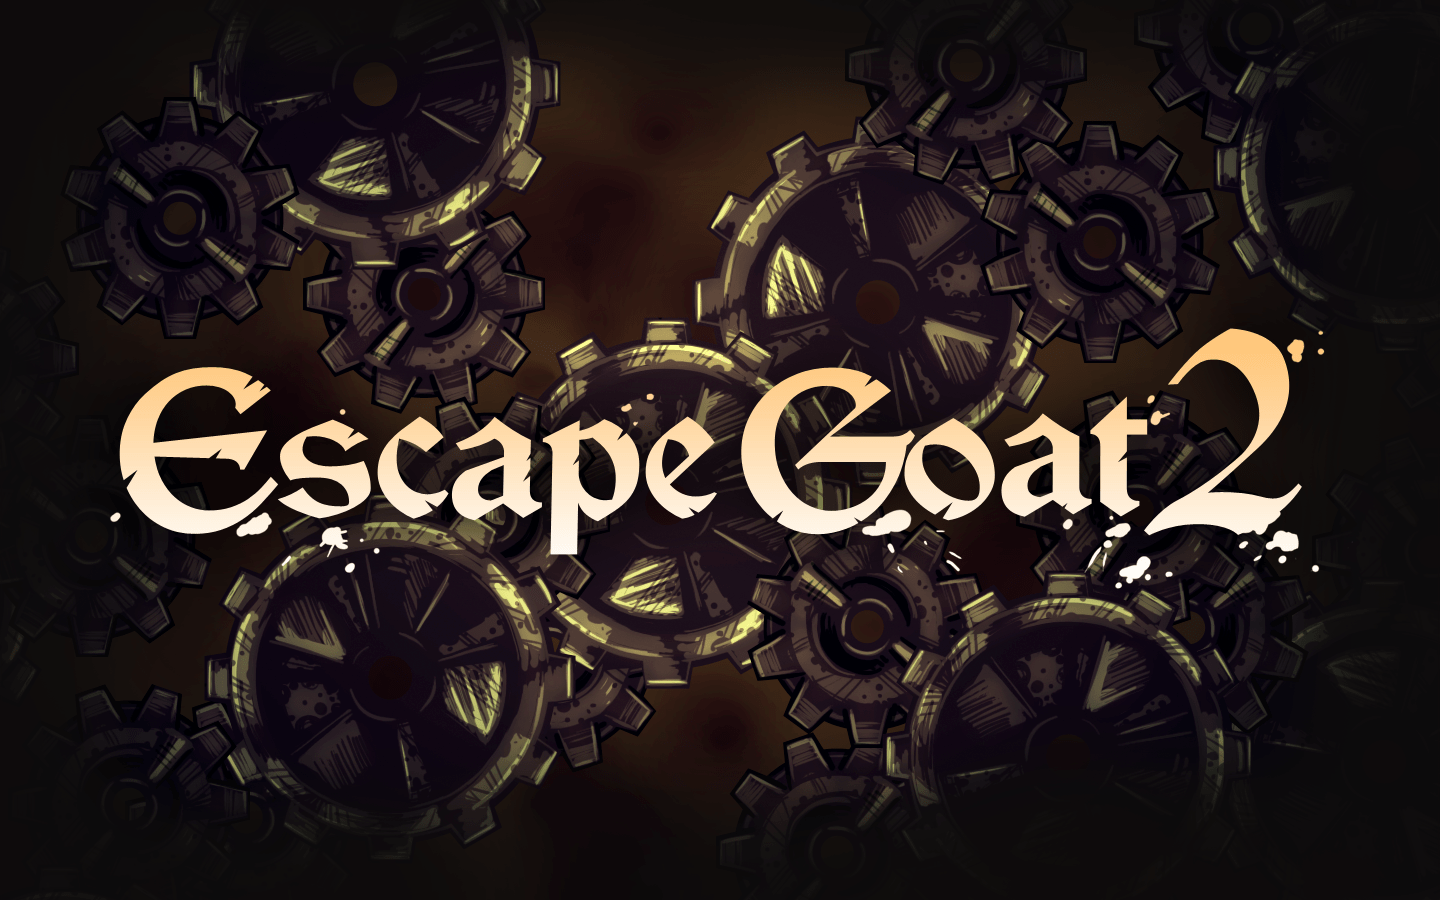 video game reviews escape goat - Escape Goat Review  Middle Of Nowhere Gaming Manga Art Style